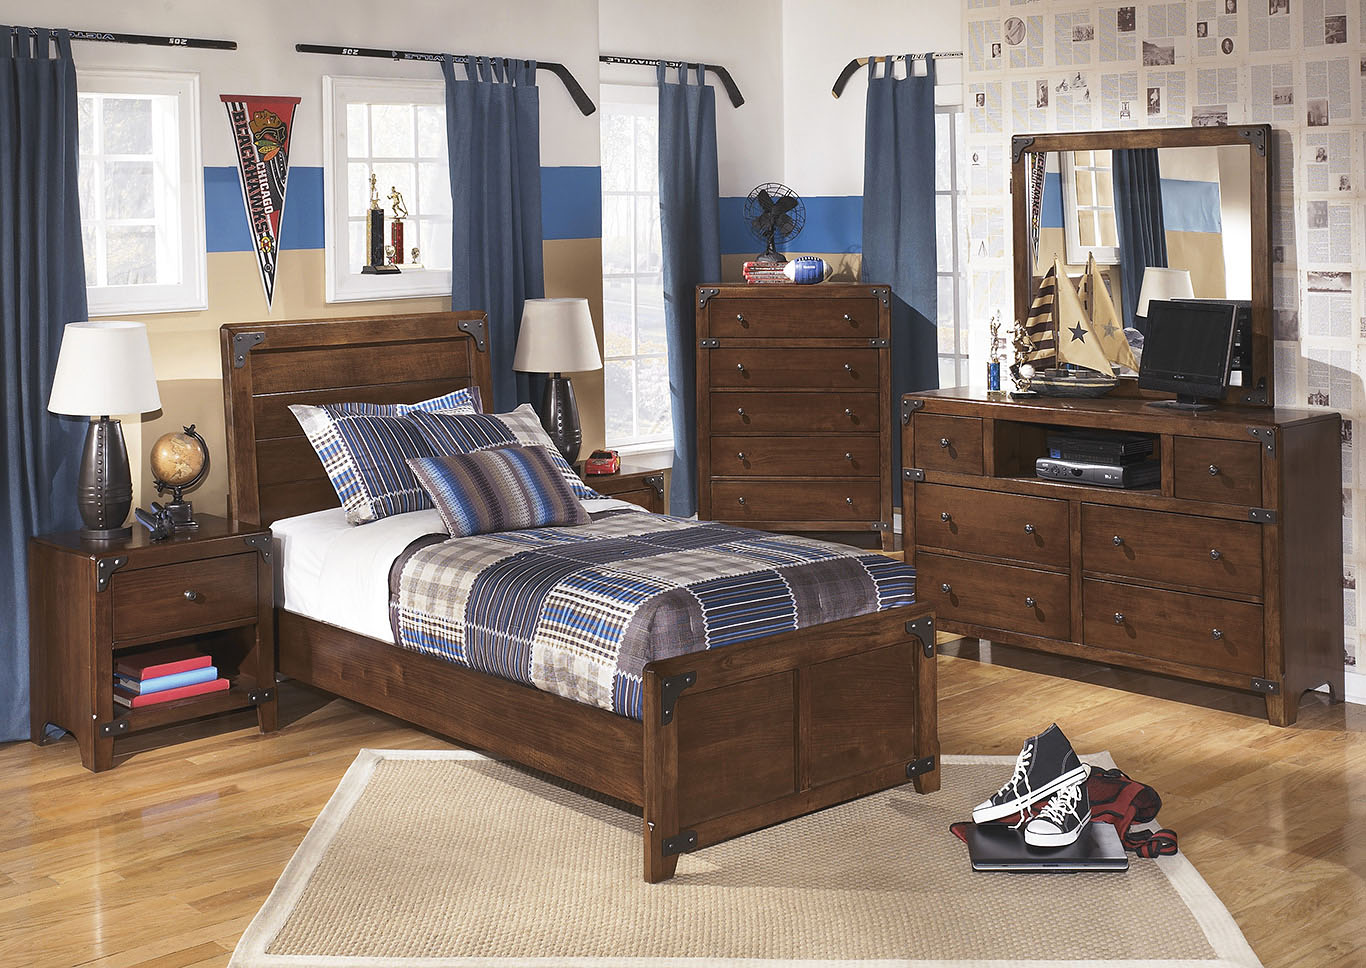 Delburne Twin Panel Bed w/Dresser, Mirror, Chest & Nightstand,Signature Design By Ashley